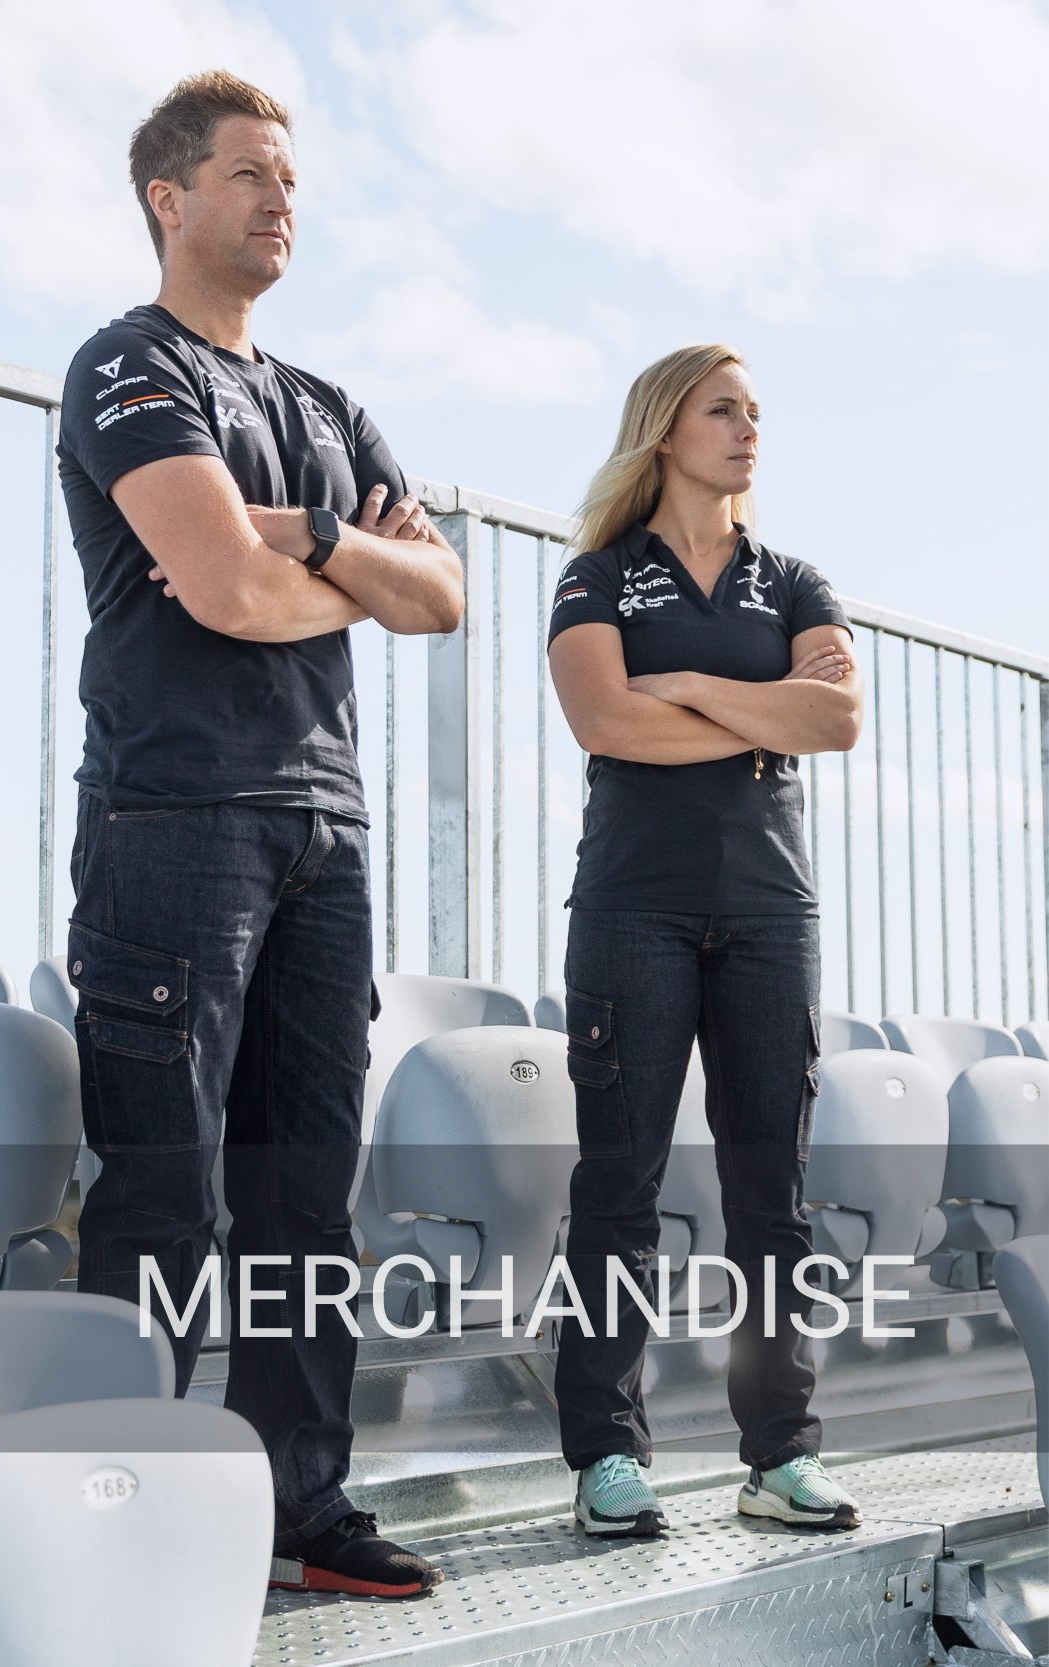 An image to showcase a service called merchandise. With two racecar drivers wearing a custom made clothing collection.